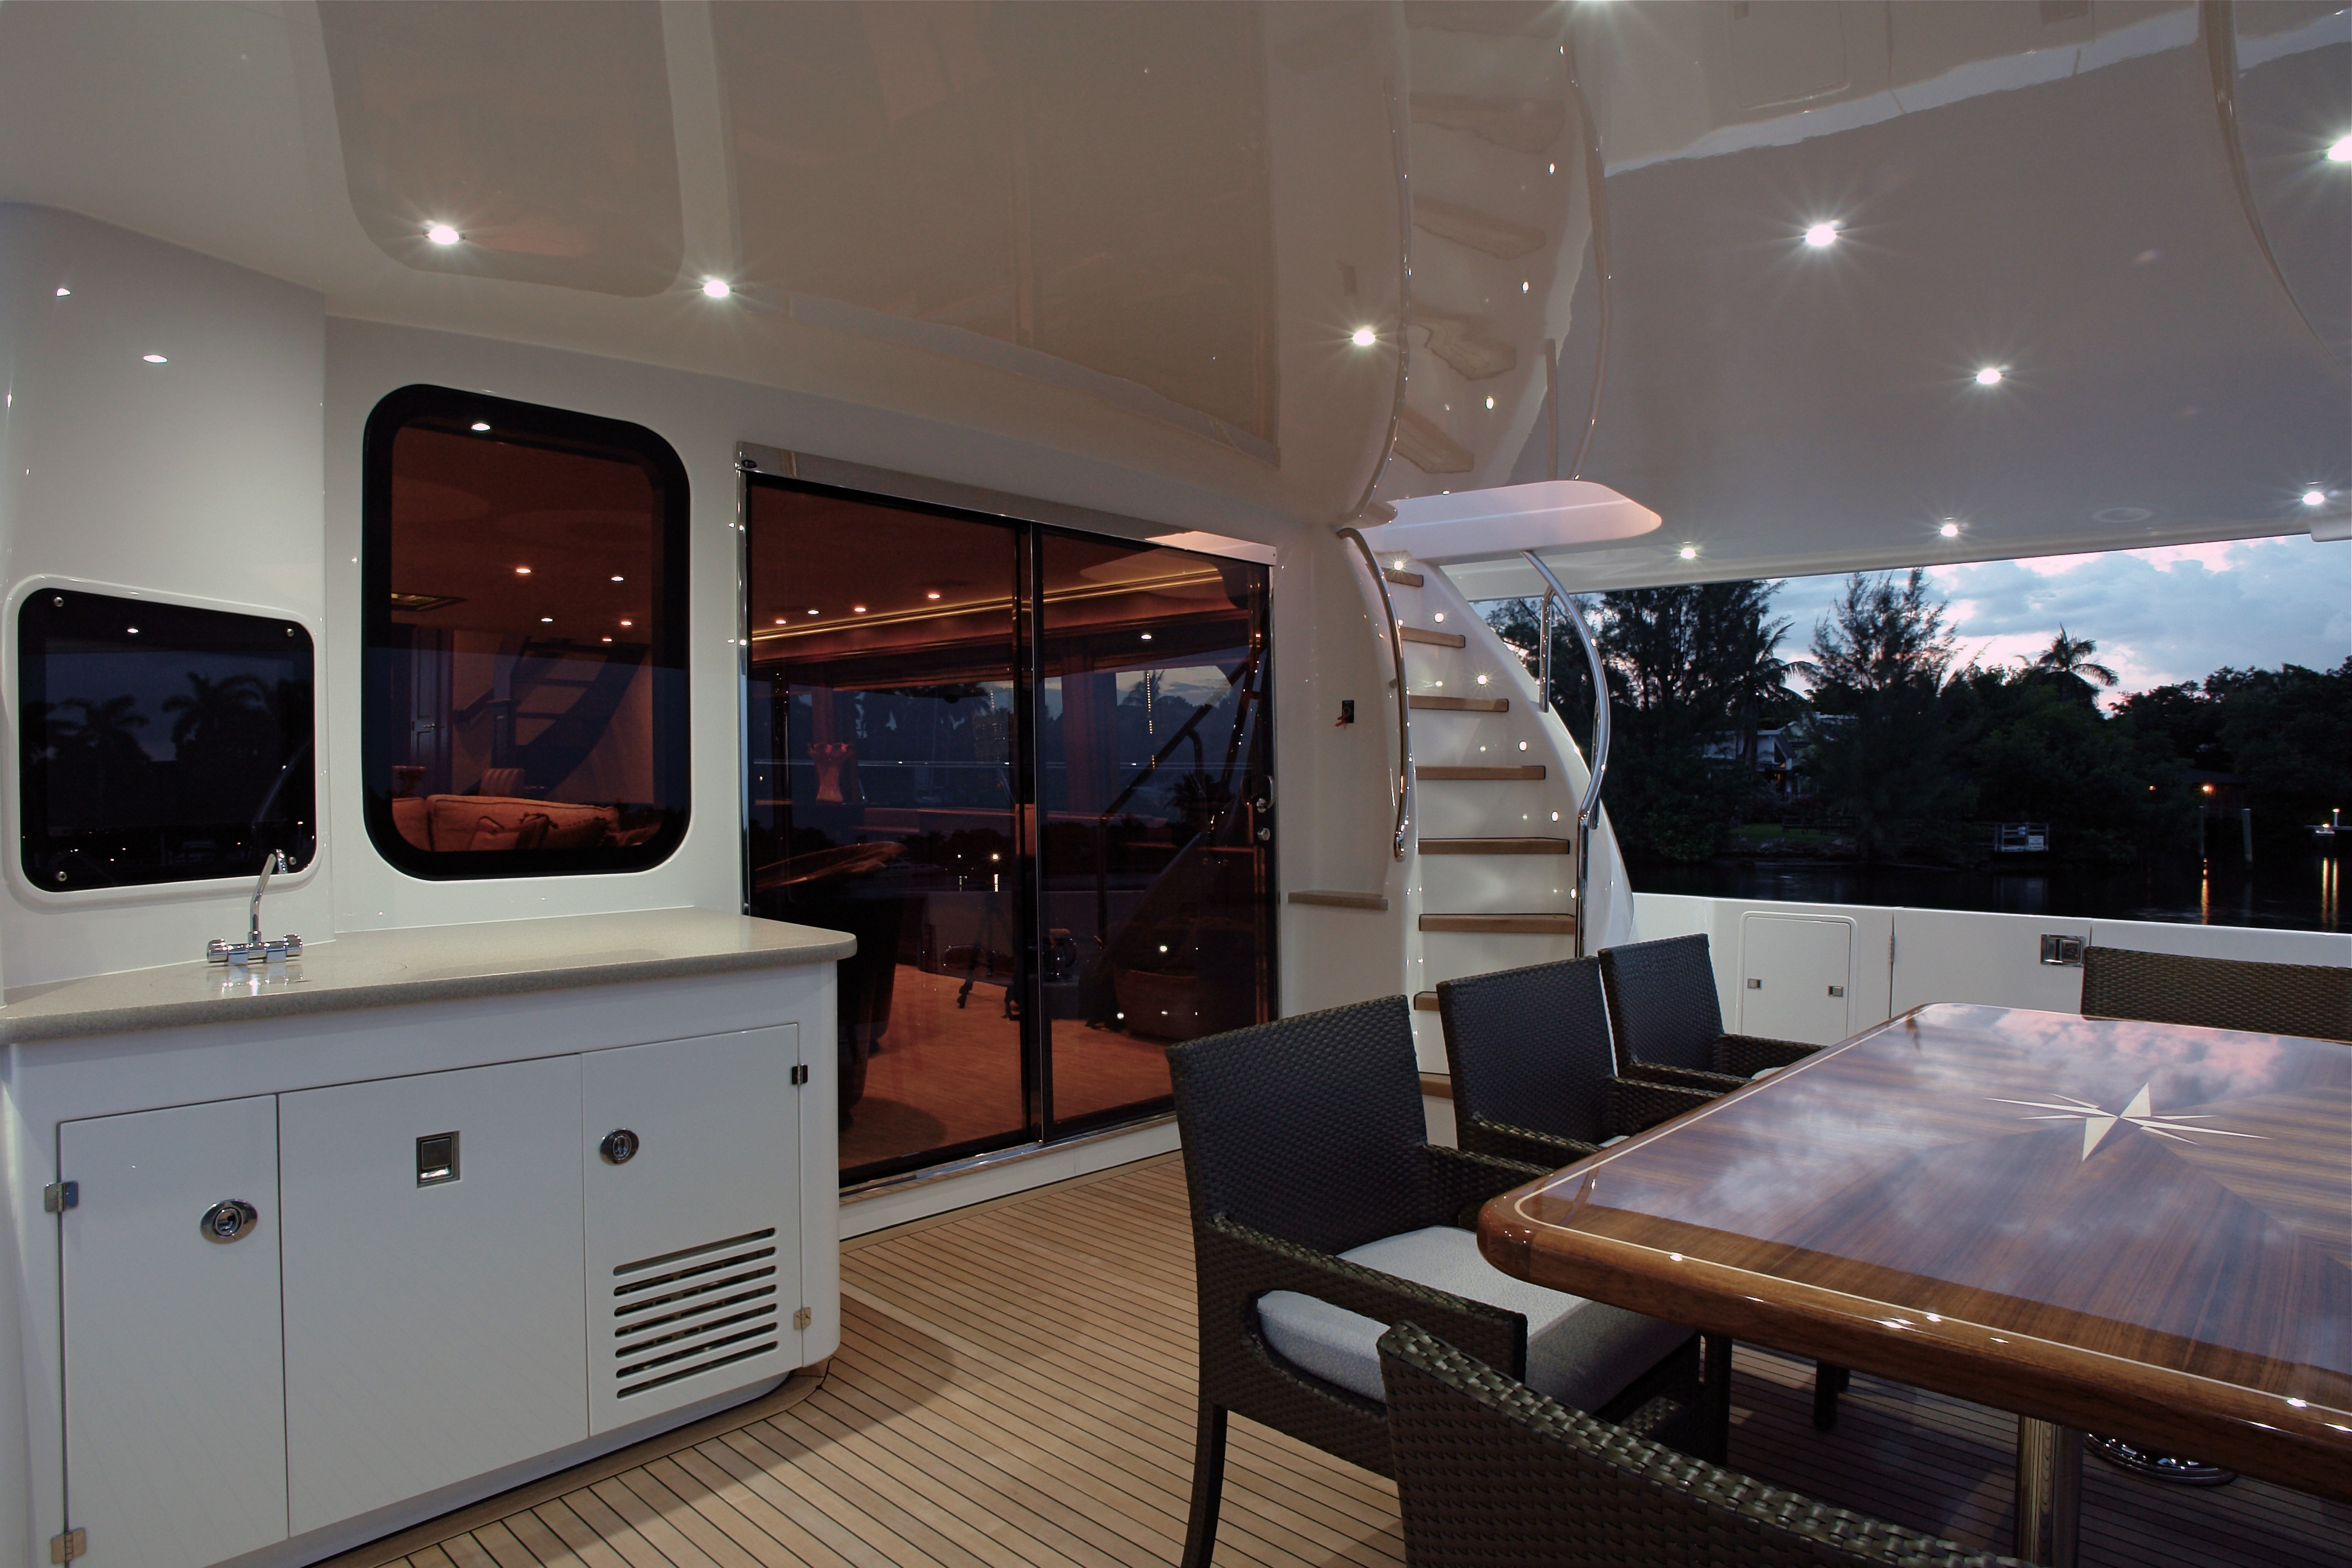 The 25m Yacht SEAS THE MOMENT